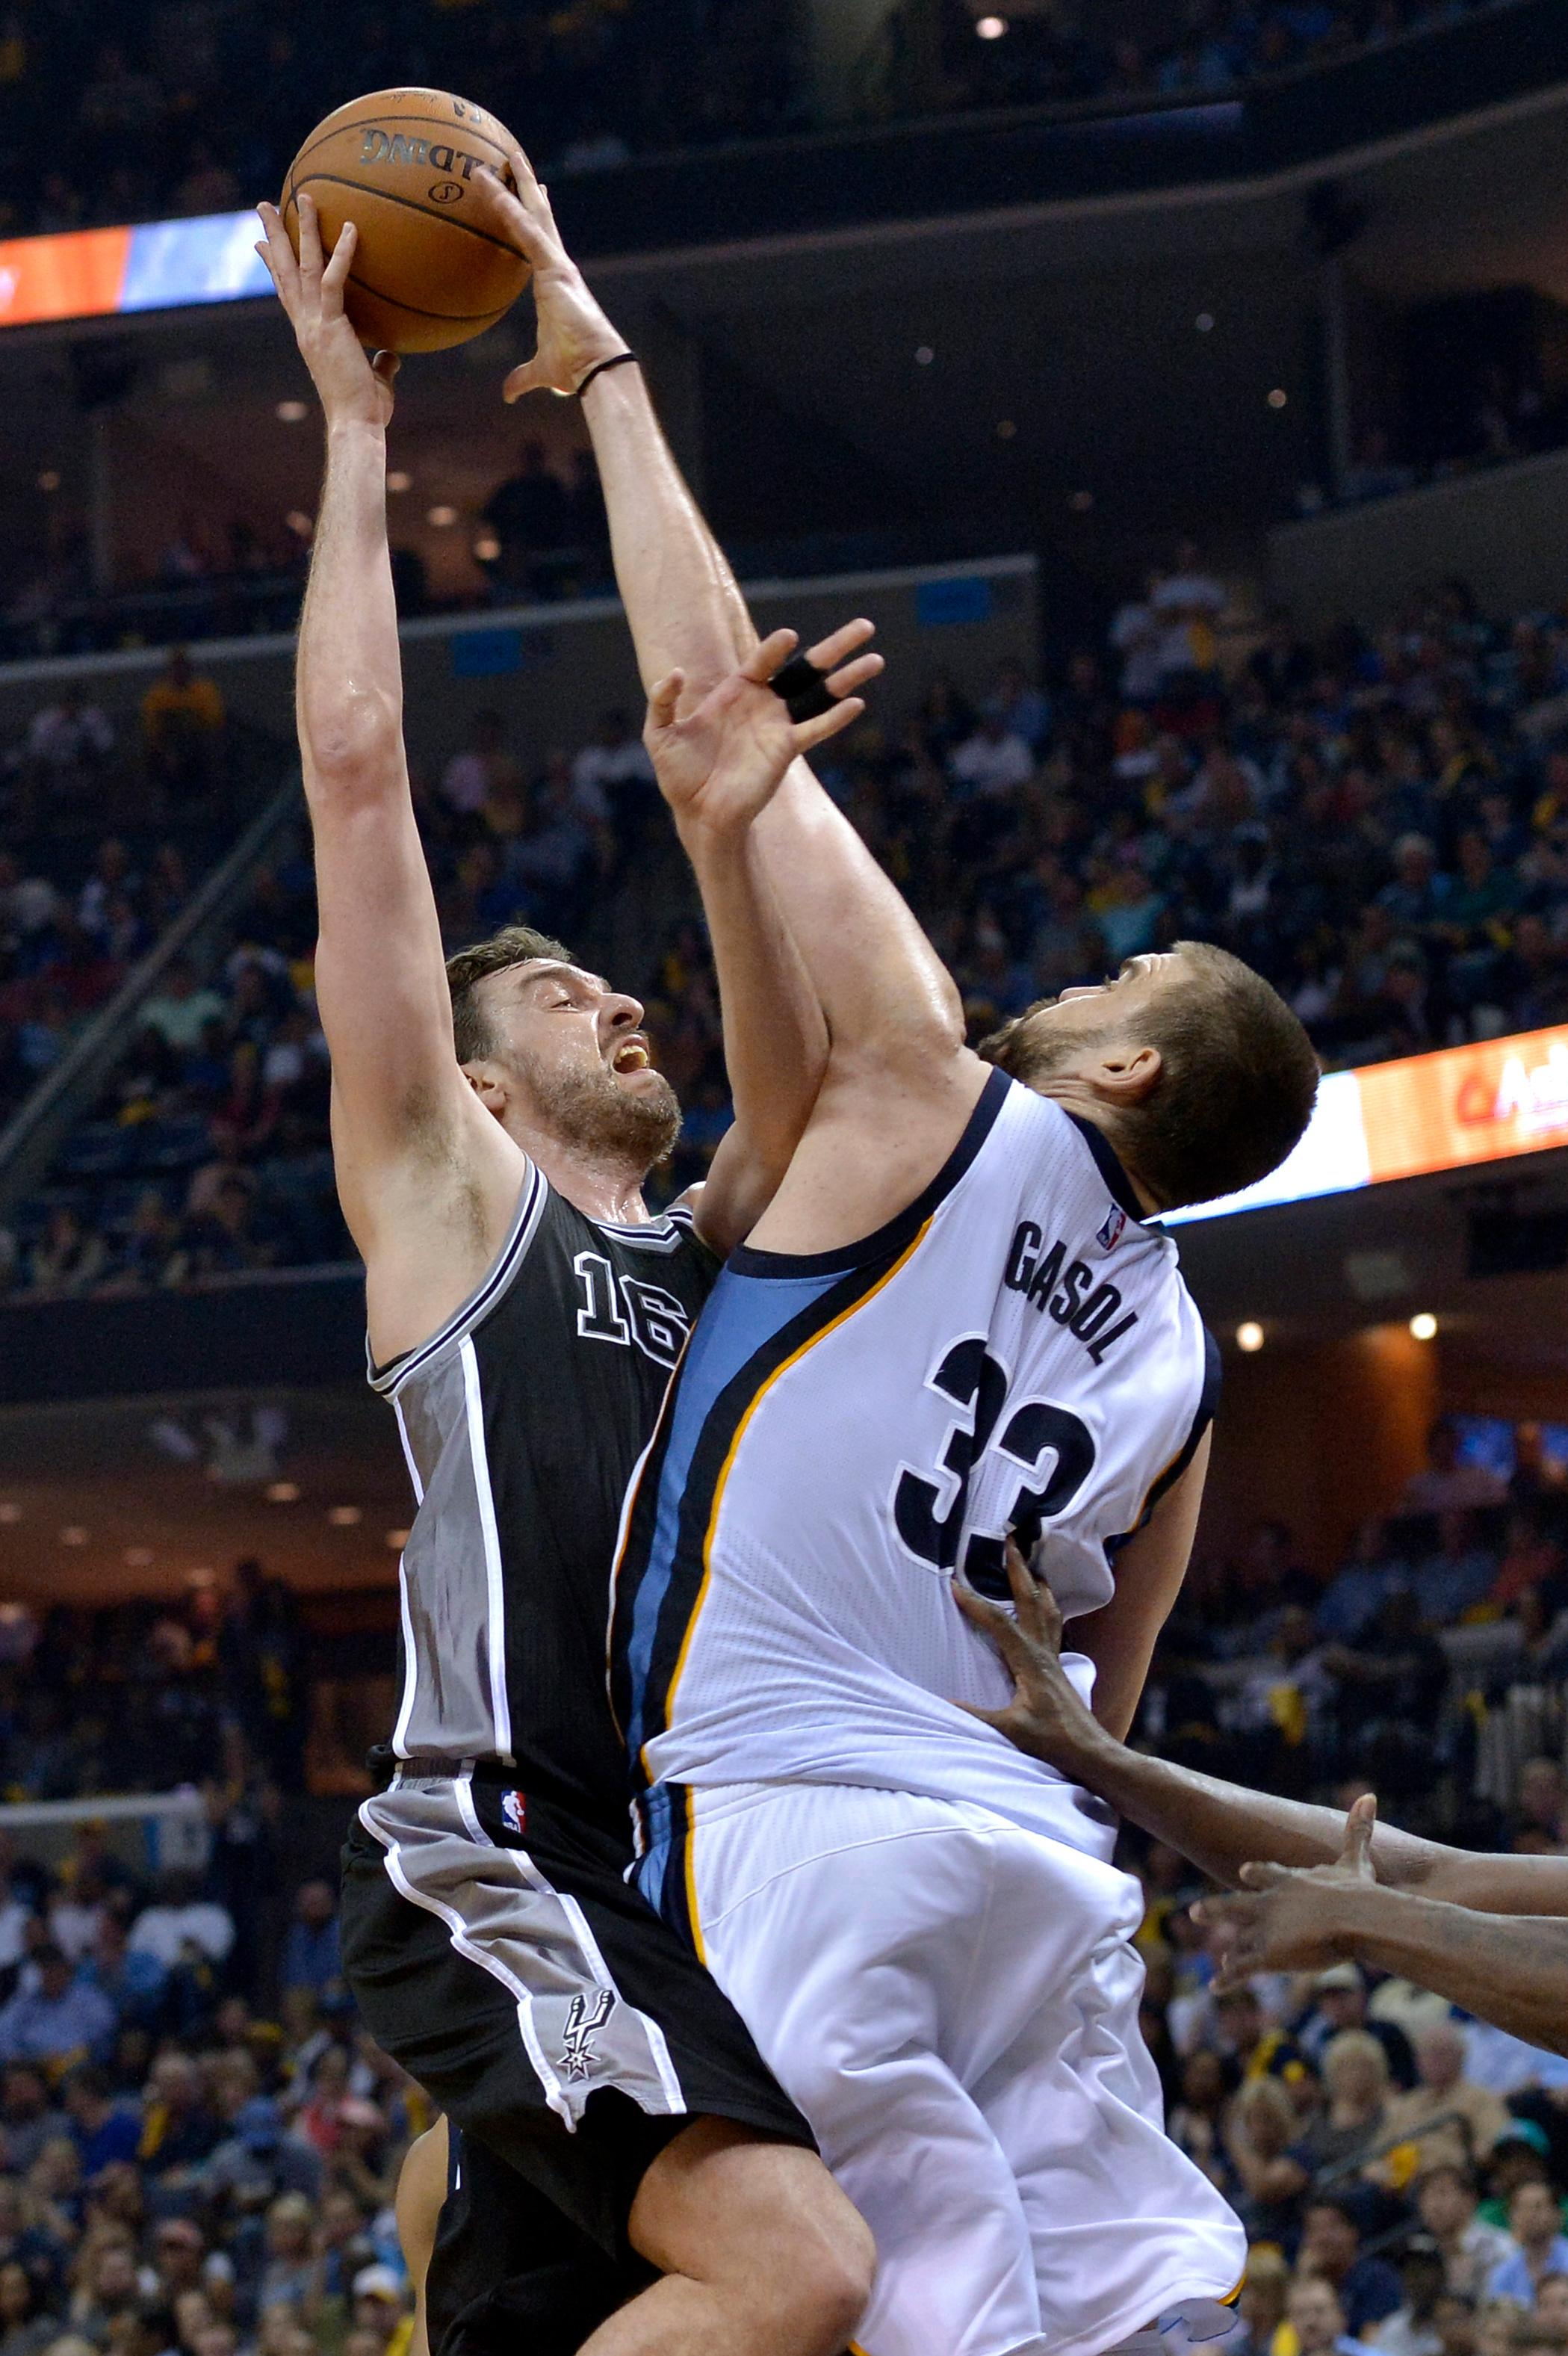 Memphis Grizzlies center Marc Gasol (33) blocks a shot by San Antonio Spurs center Pau Gasol (16), his brother, during the second half of Game 3 in an NBA basketball first-round playoff series Thursday, April 20, 2017, in Memphis, Tenn. (AP Photo/Brandon Dill)